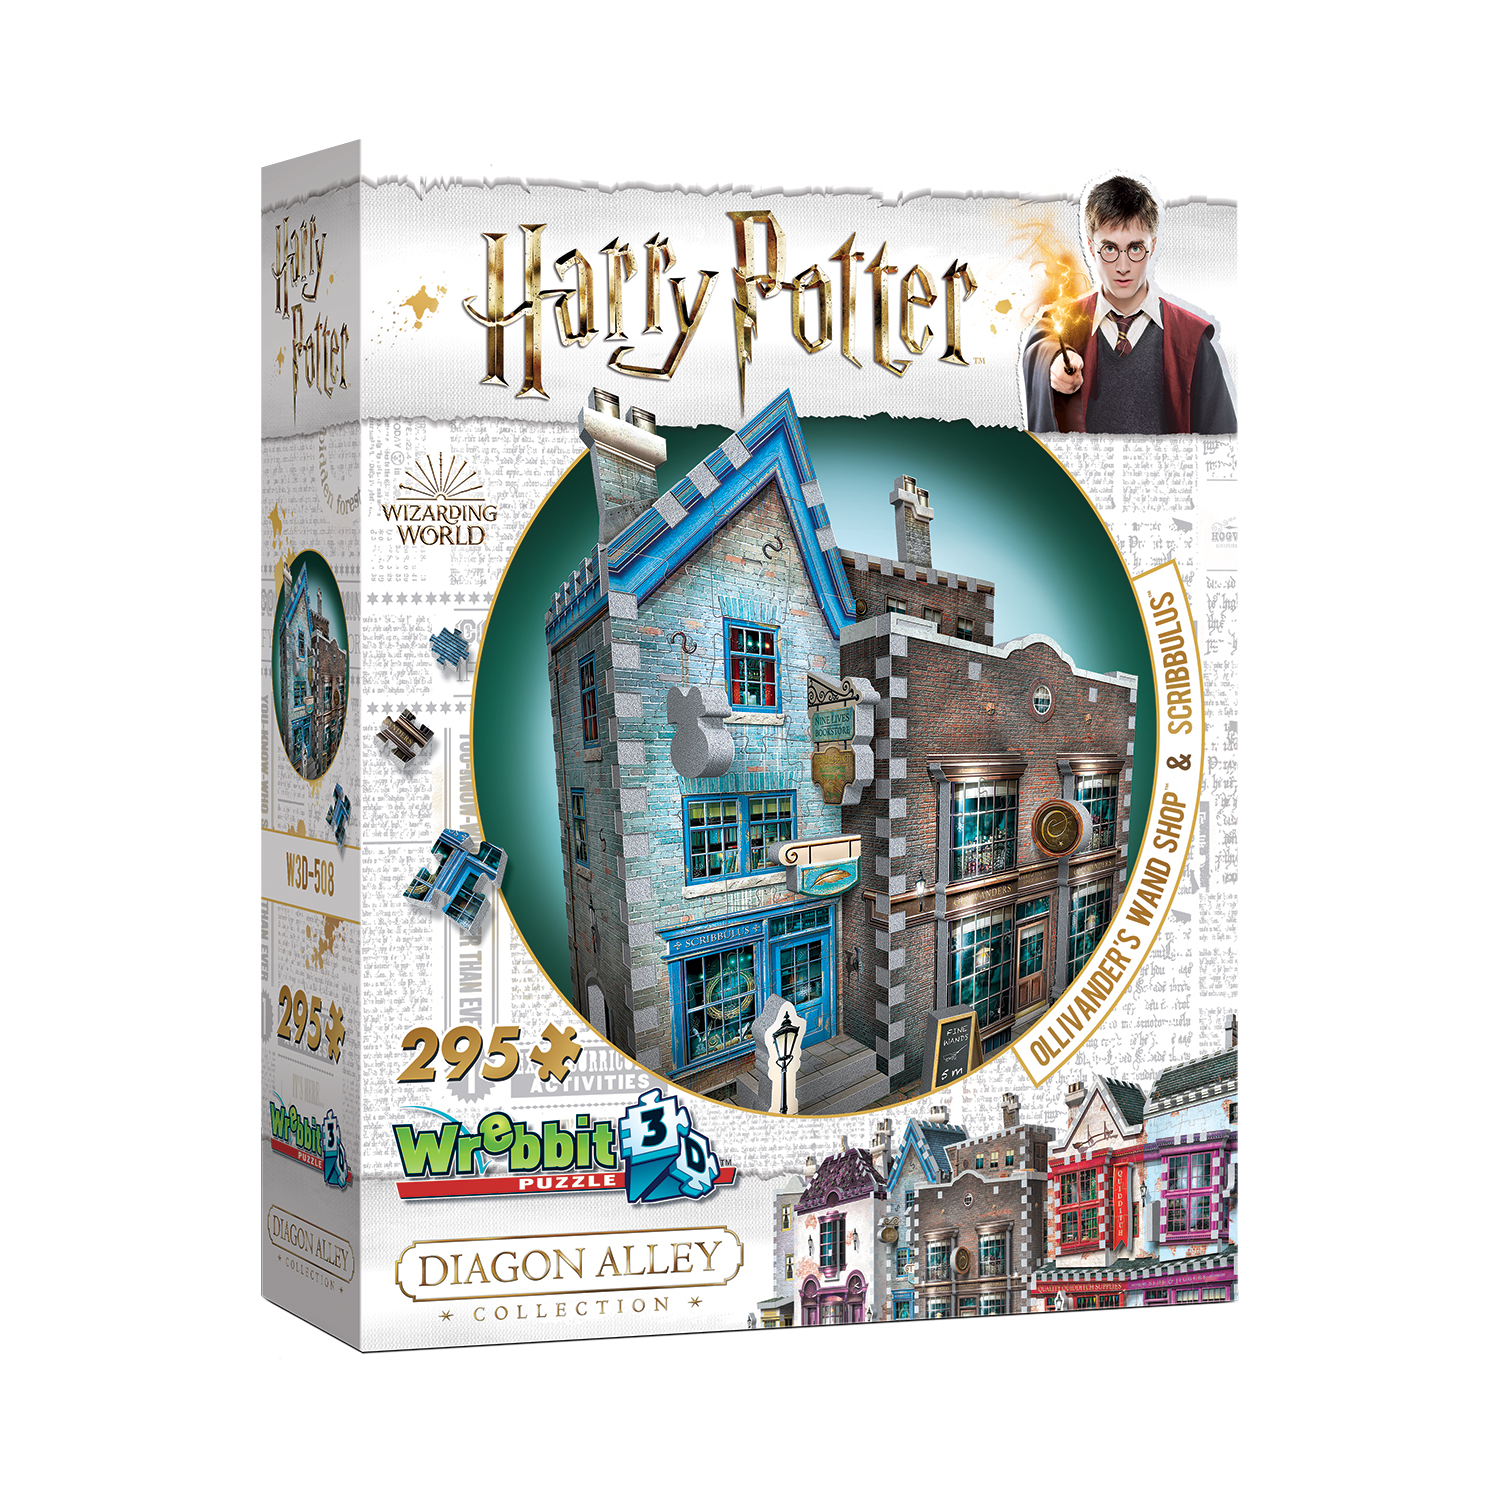 Harry Potter Daigon Alley Collection Ollivander's Wand Shop & Scribbulus 3D Puzzle: 295 Pcs by Wrebbit